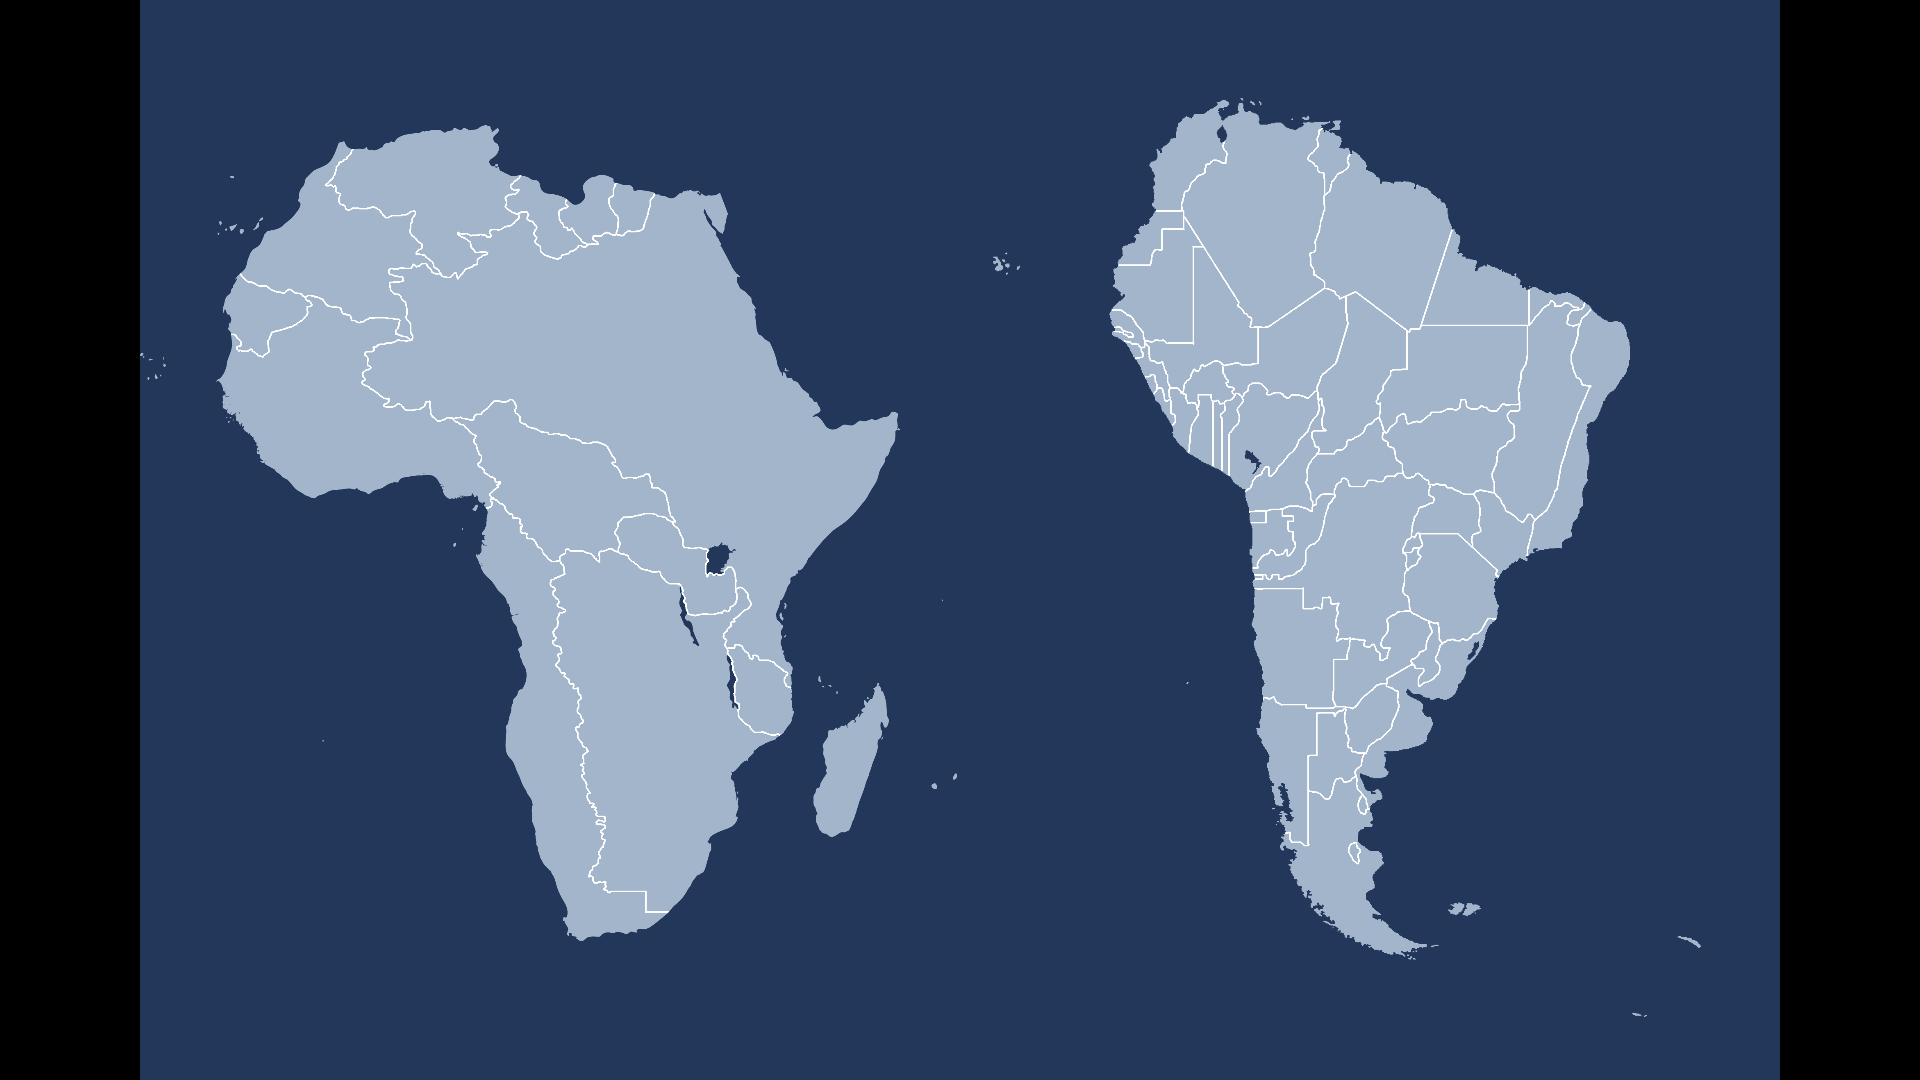 America And Africa Map Switching Borders: Africa and South America (Africa, South America